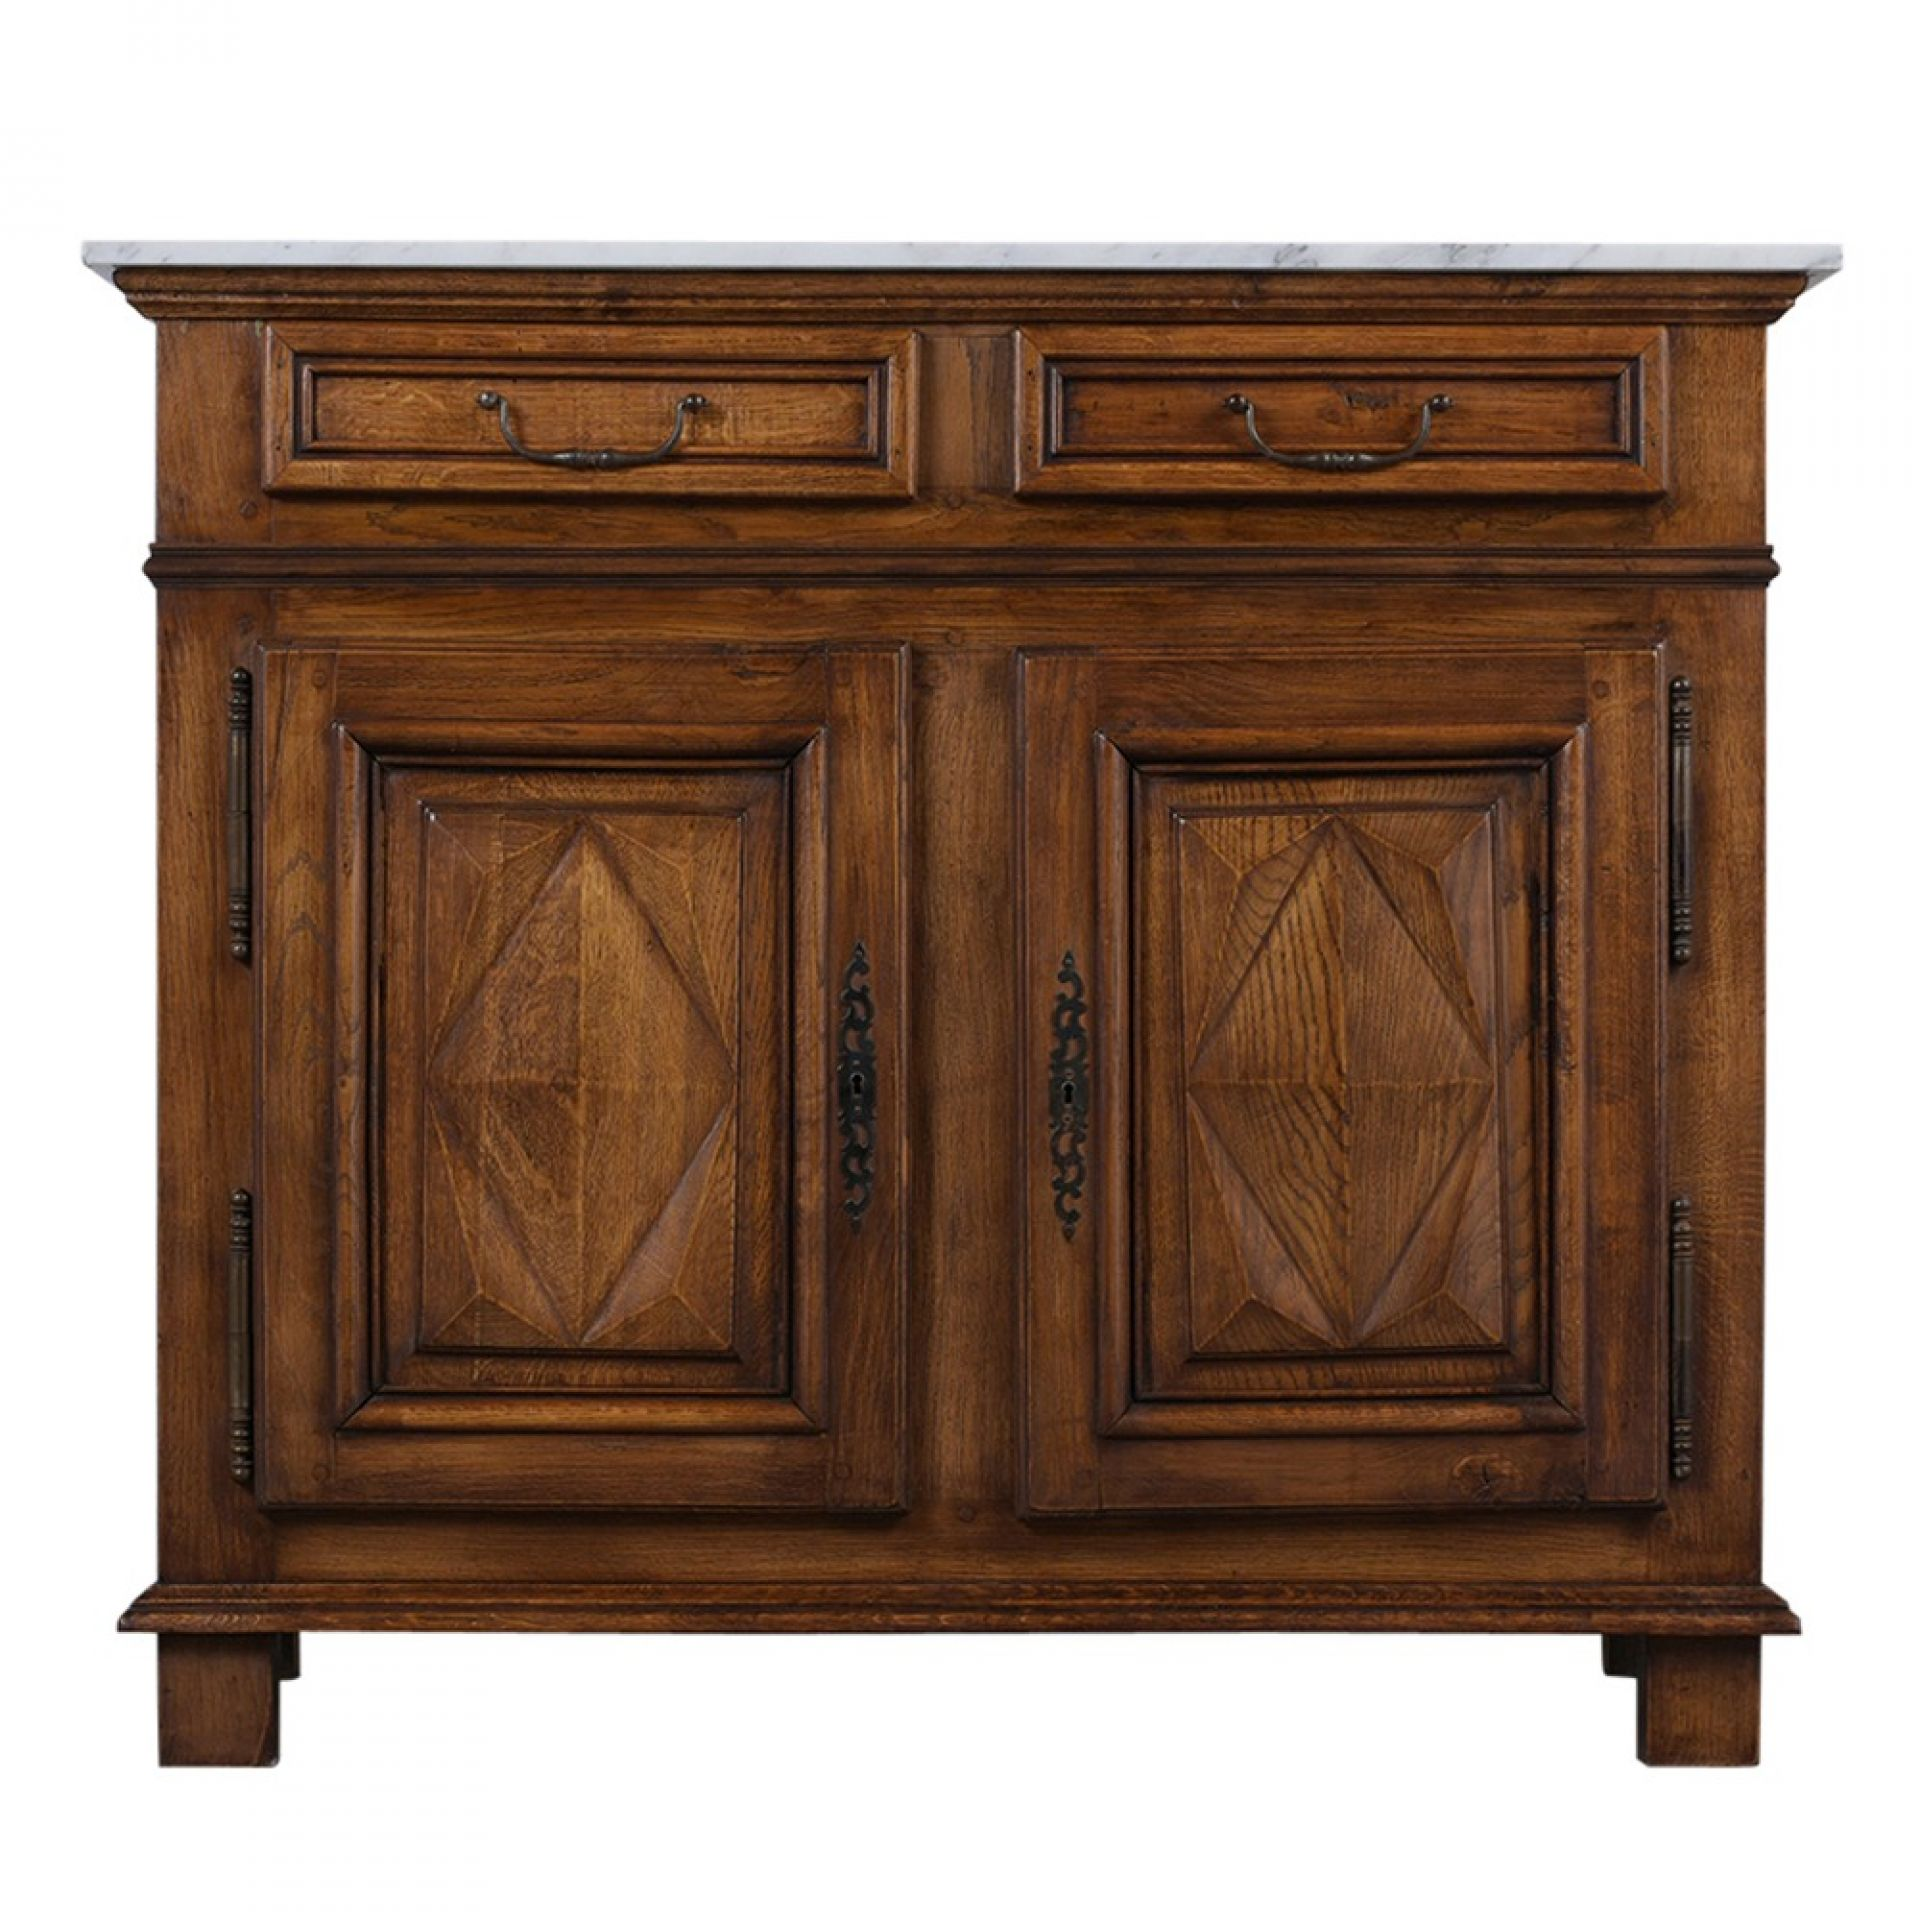 Antique French Provincial-Style Buffet with Carrara Marble Top